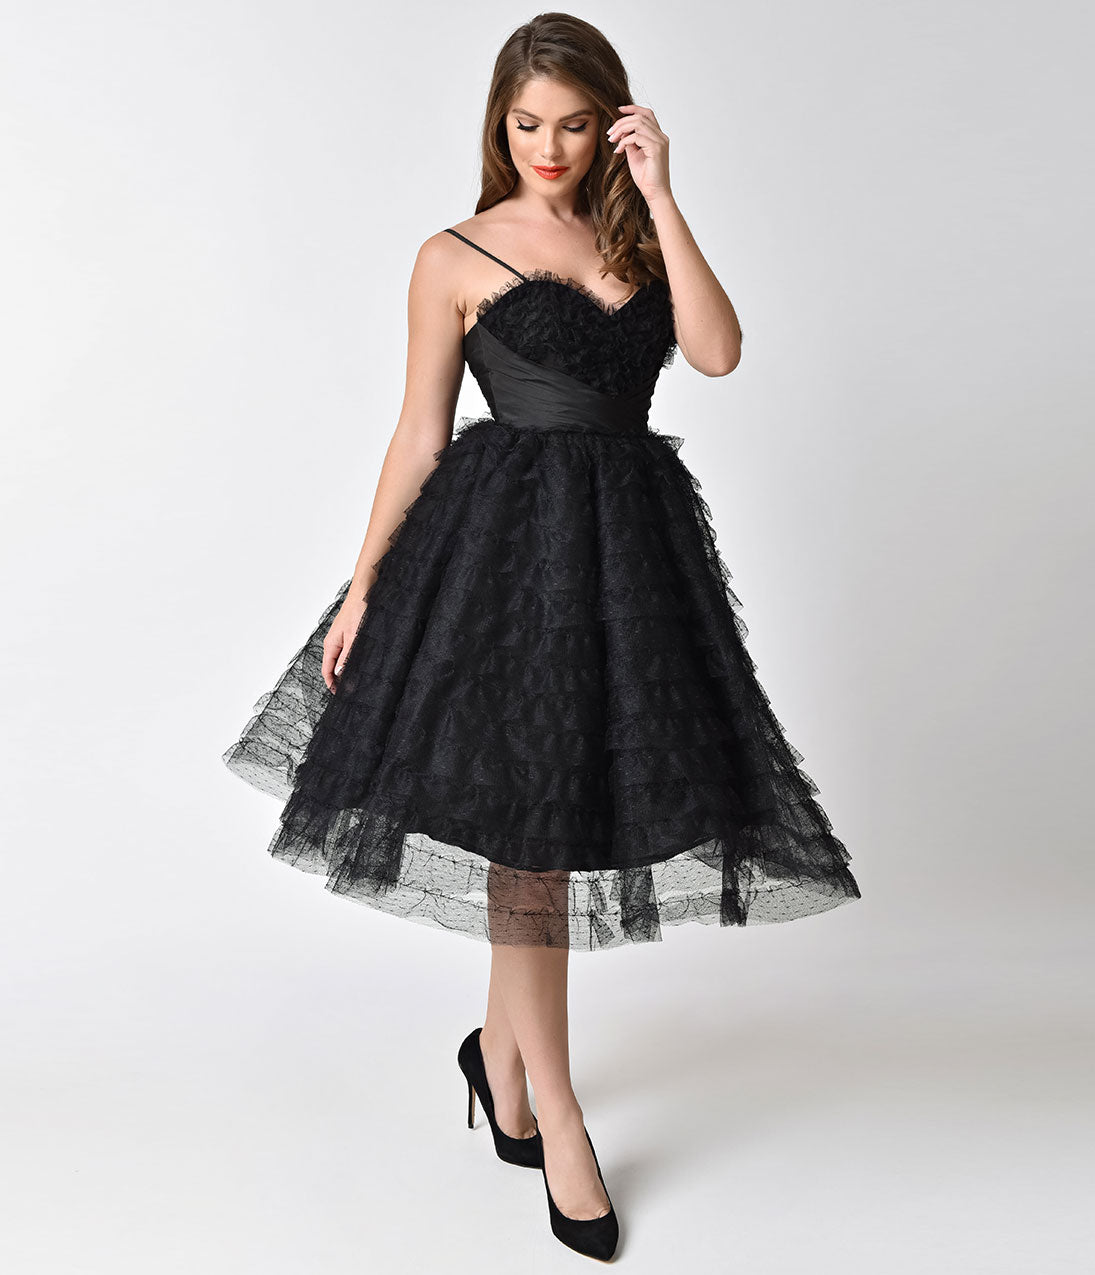 1950s Formal Dresses & Evening Gowns to Buy Unique Vintage 1950S Black Ruffled Tulle Sweetheart Cupcake Swing Dress $128.00 AT vintagedancer.com